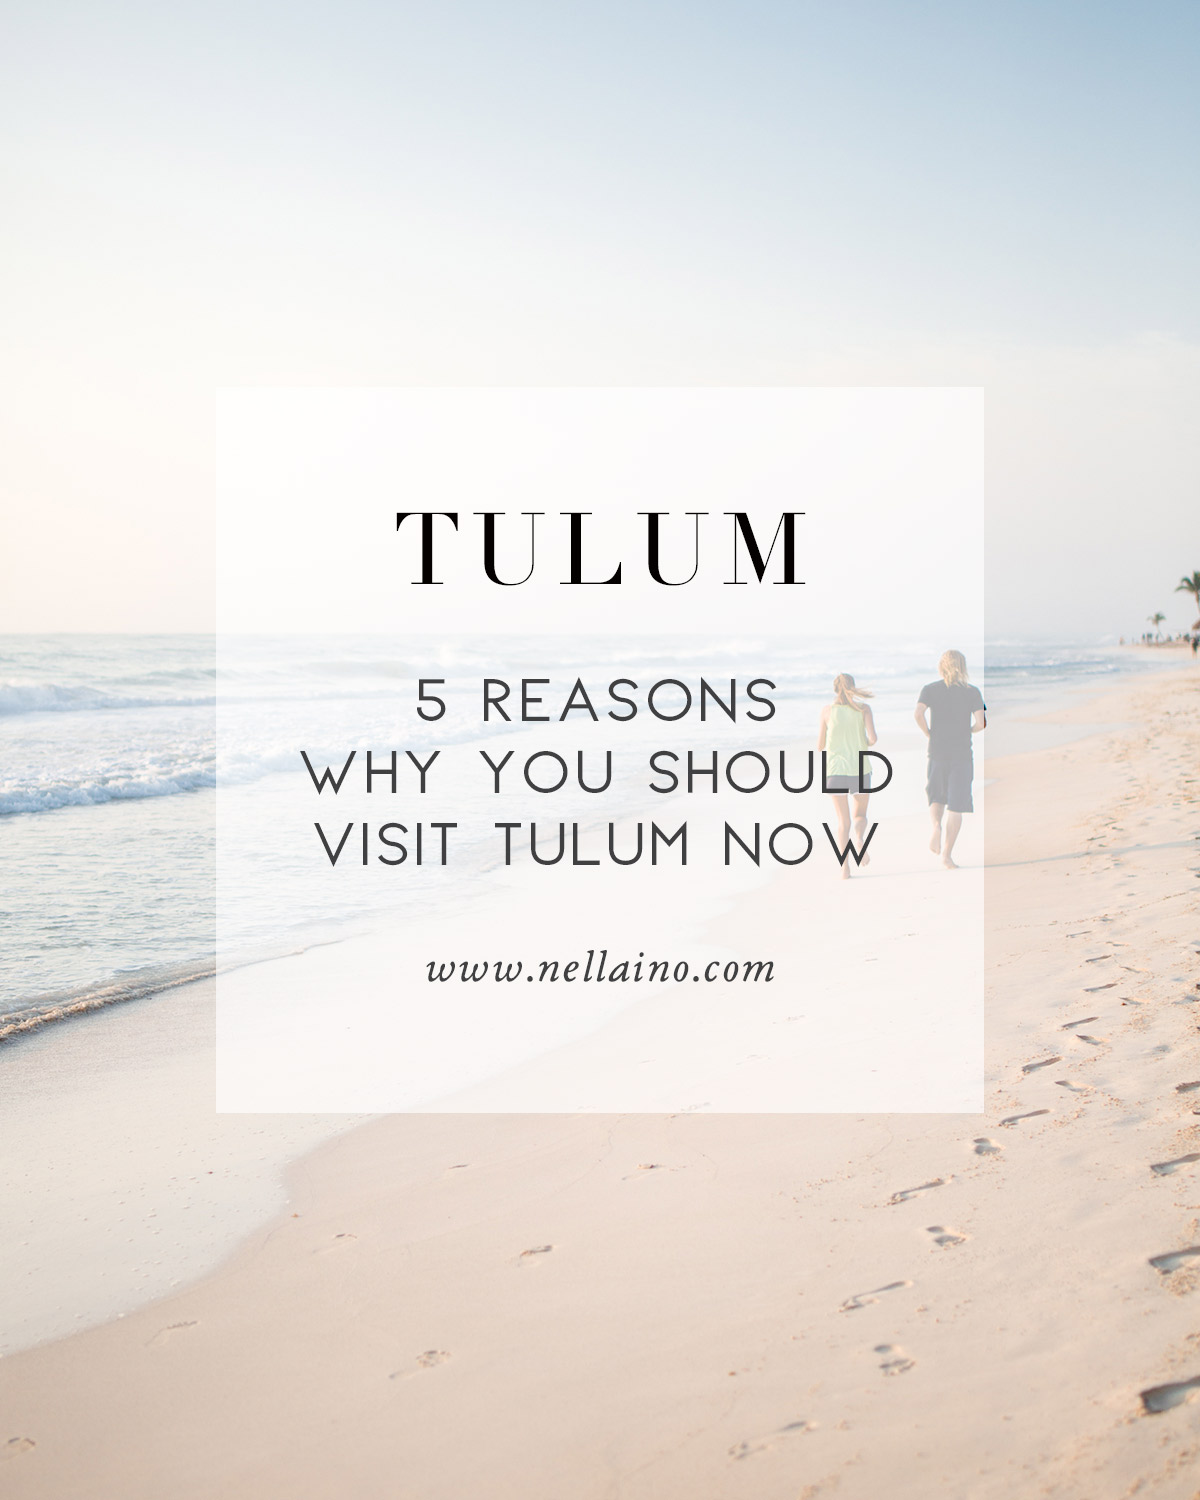 5-reasons-why-you-should-visit-Tulum.jpg